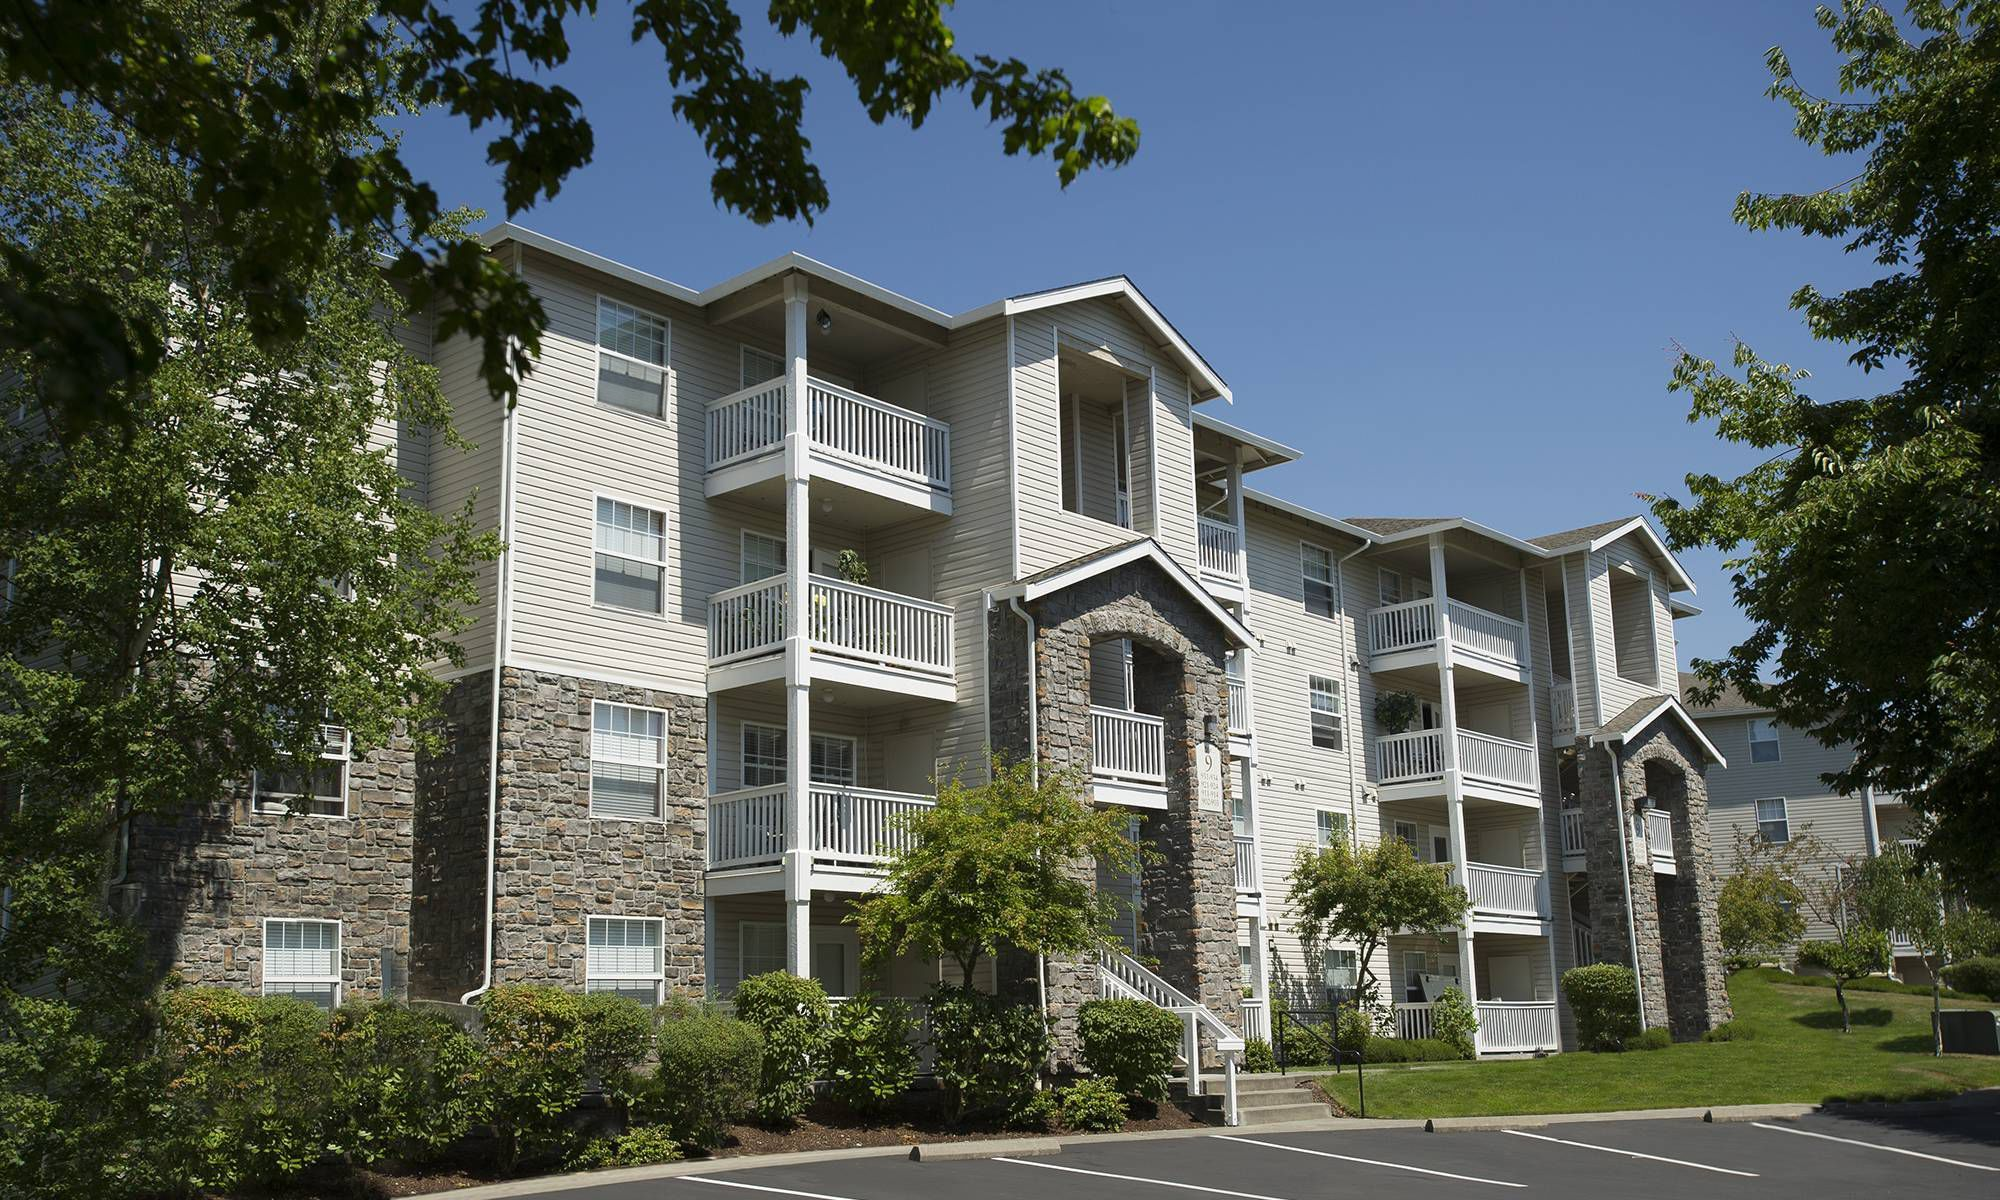 Apartments in Sammamish, WA